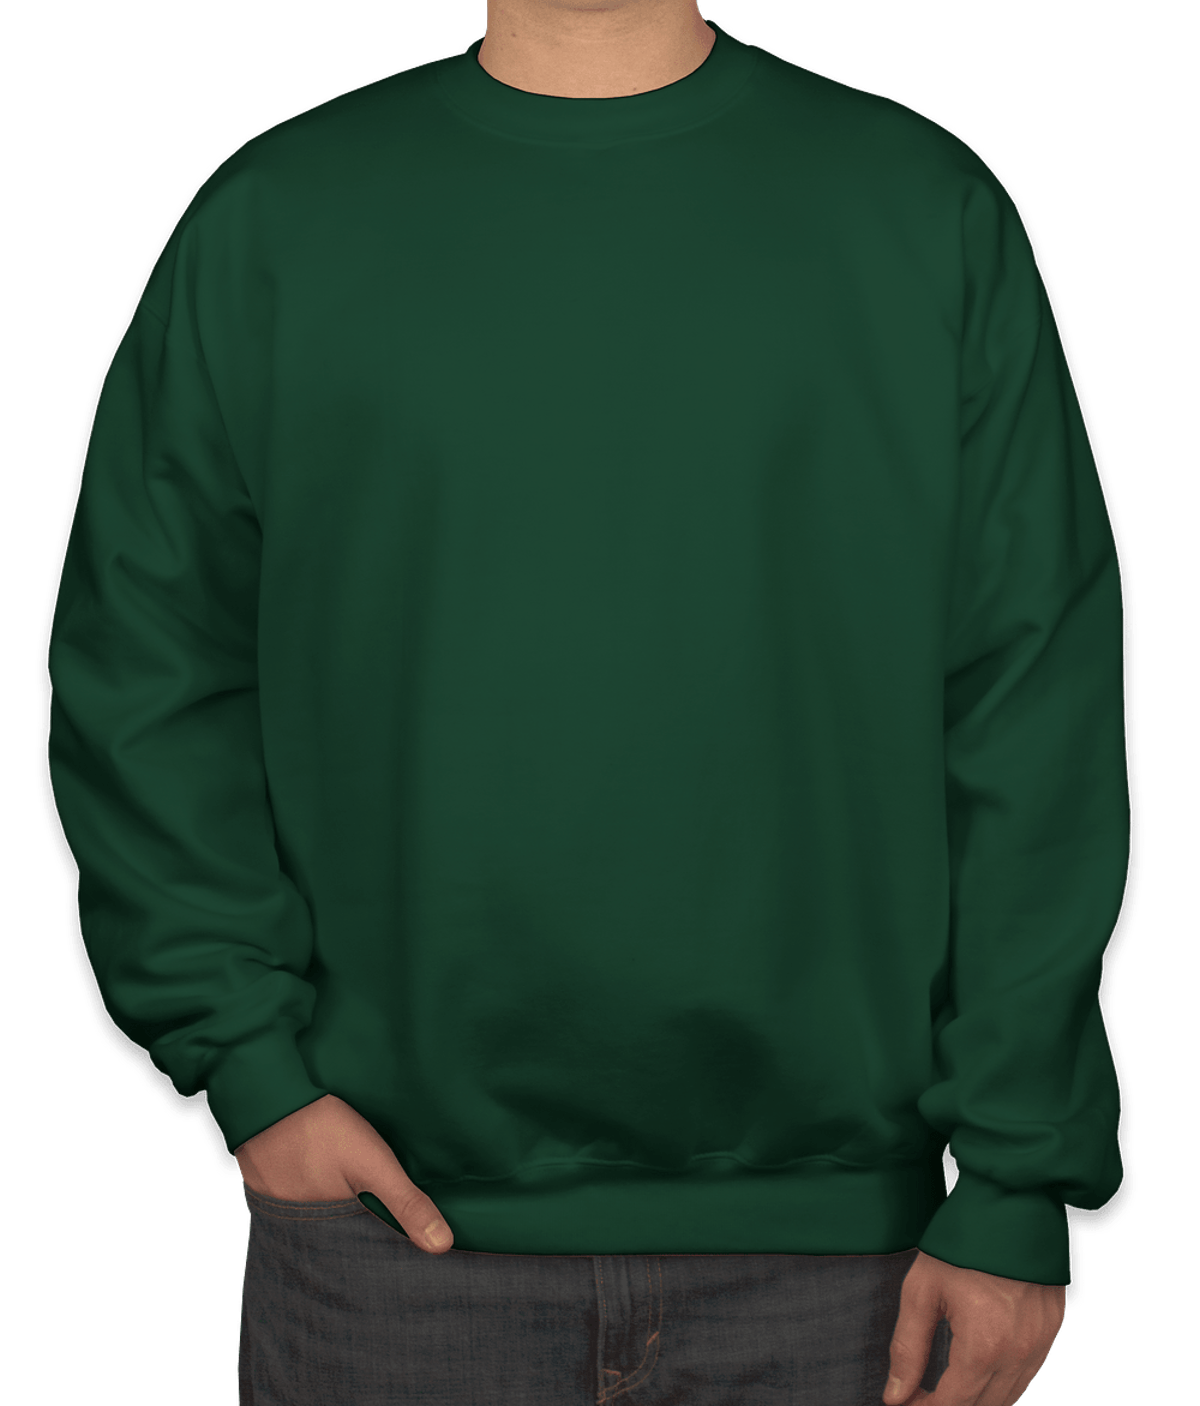 Hanes Ultimate Heavyweight Crewneck Sweatshirt